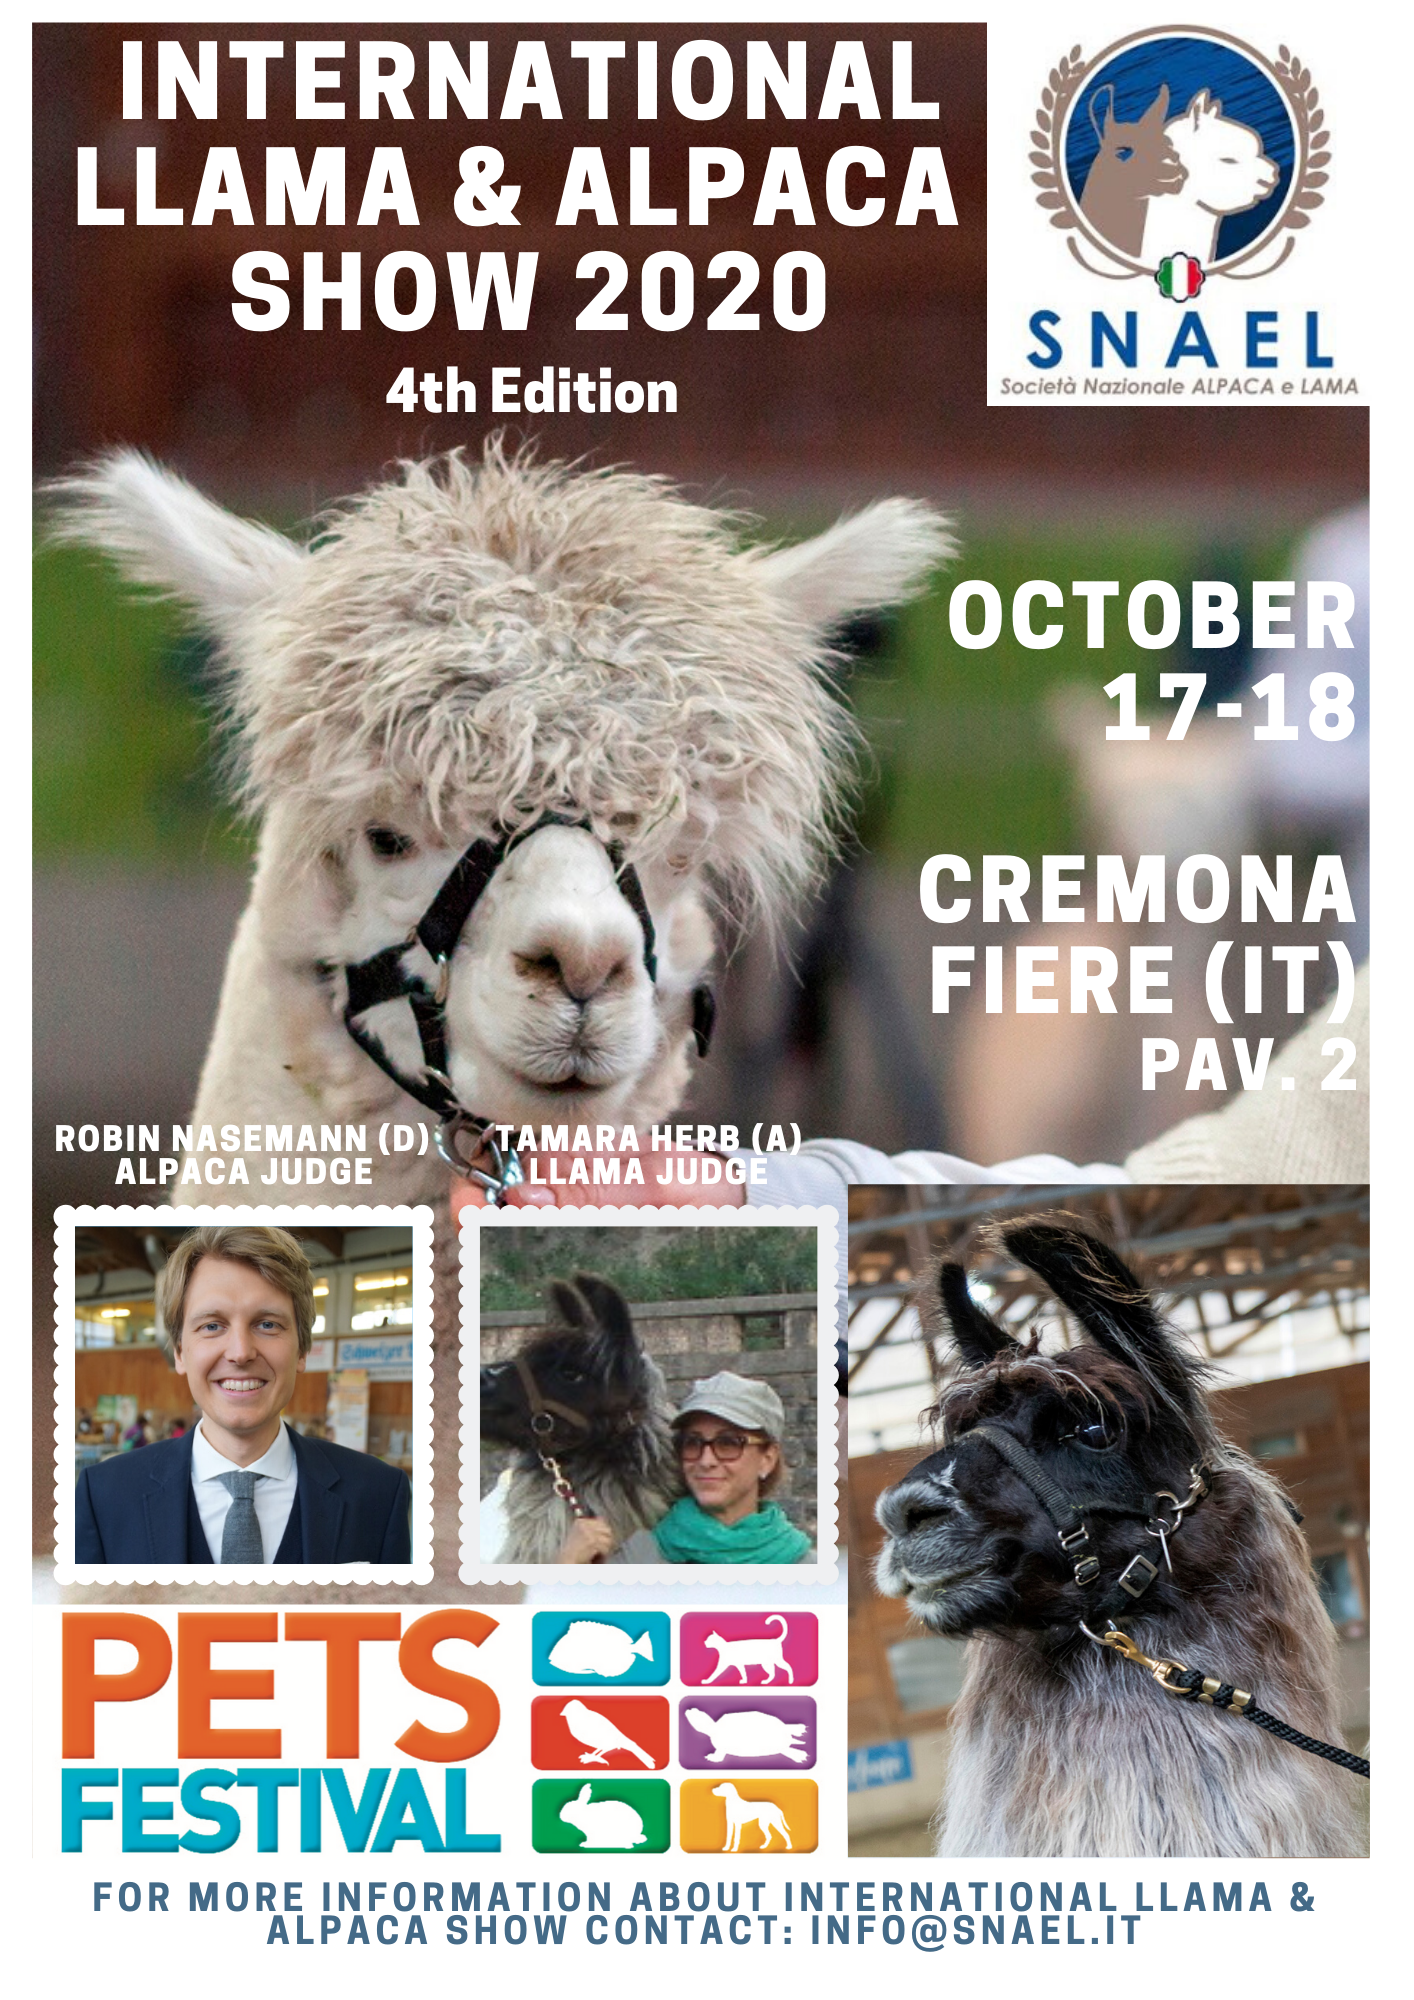 International Llama & Alpaca Show 2020 - 4th  Edition